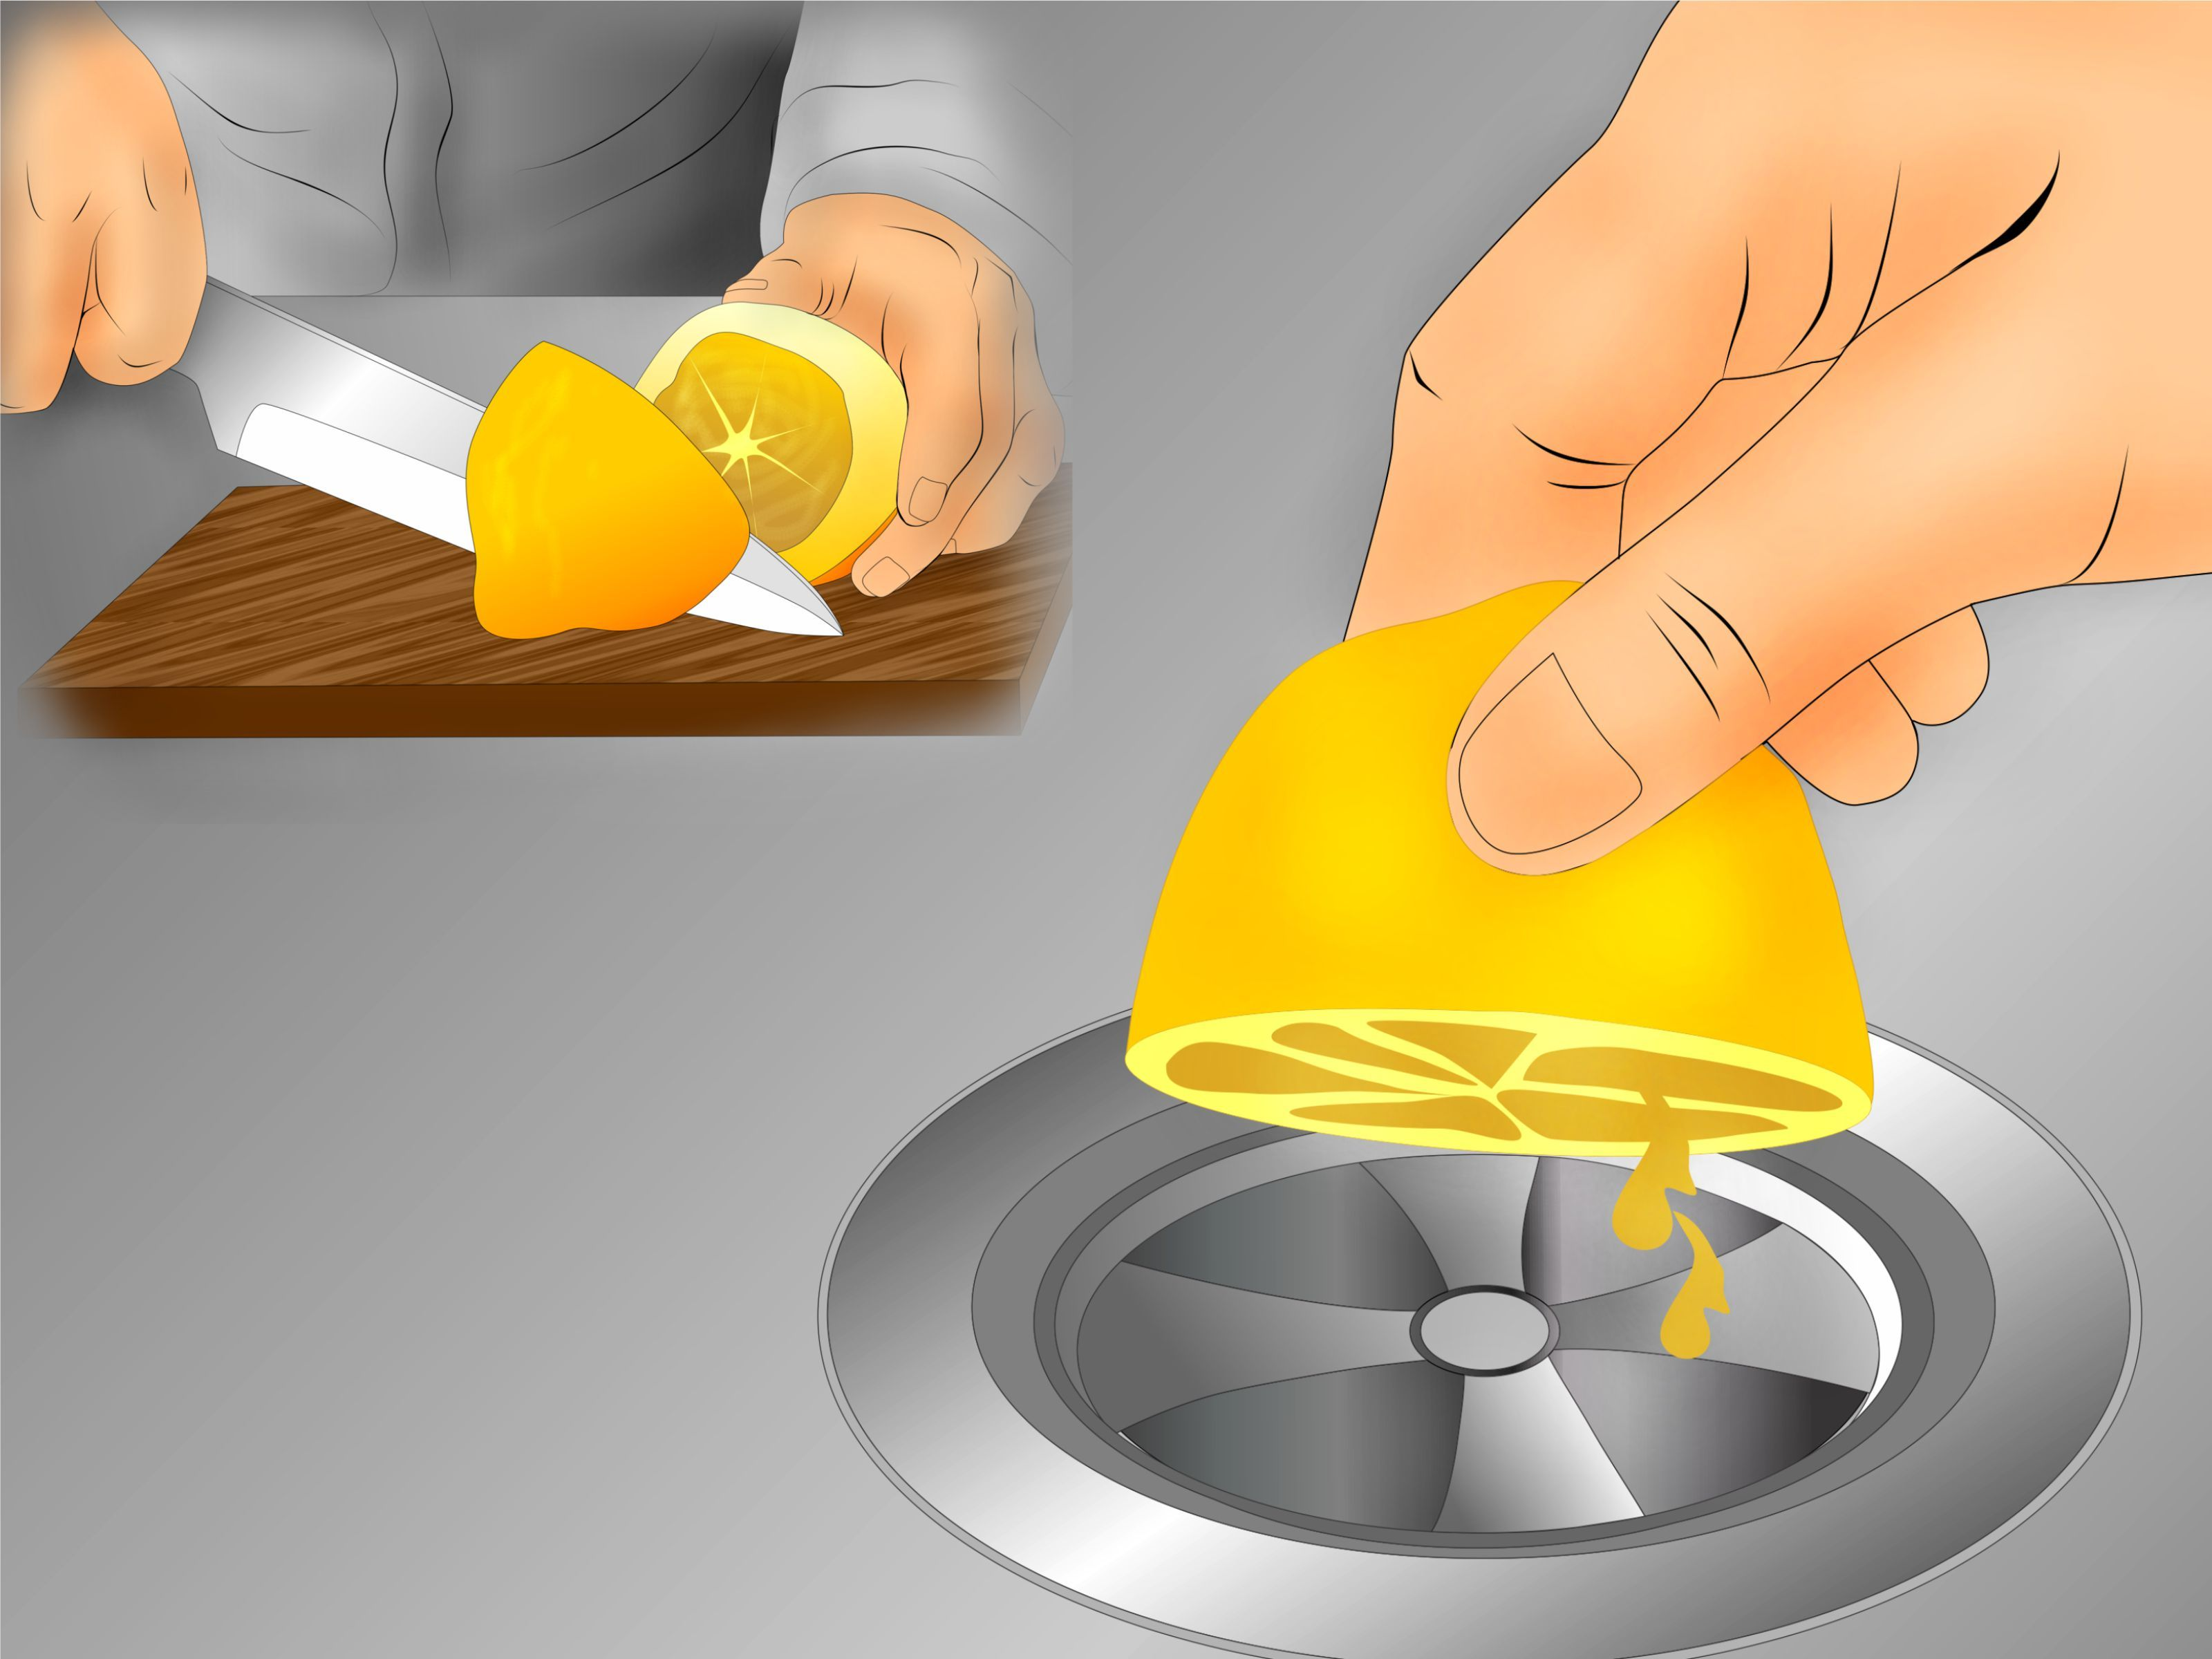 how to unclog a sink unclog kitchen sink How to Unclog a Garbage Disposal via wikiHow com Unclog a Garbage Disposal Garbage disposals